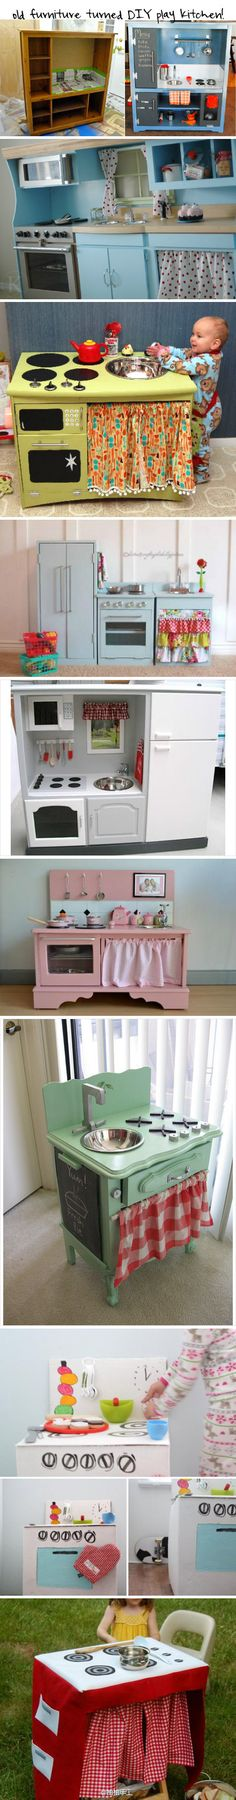 Old furniture turned DIY play kitchen - great ideas for if I ever have grandkids!